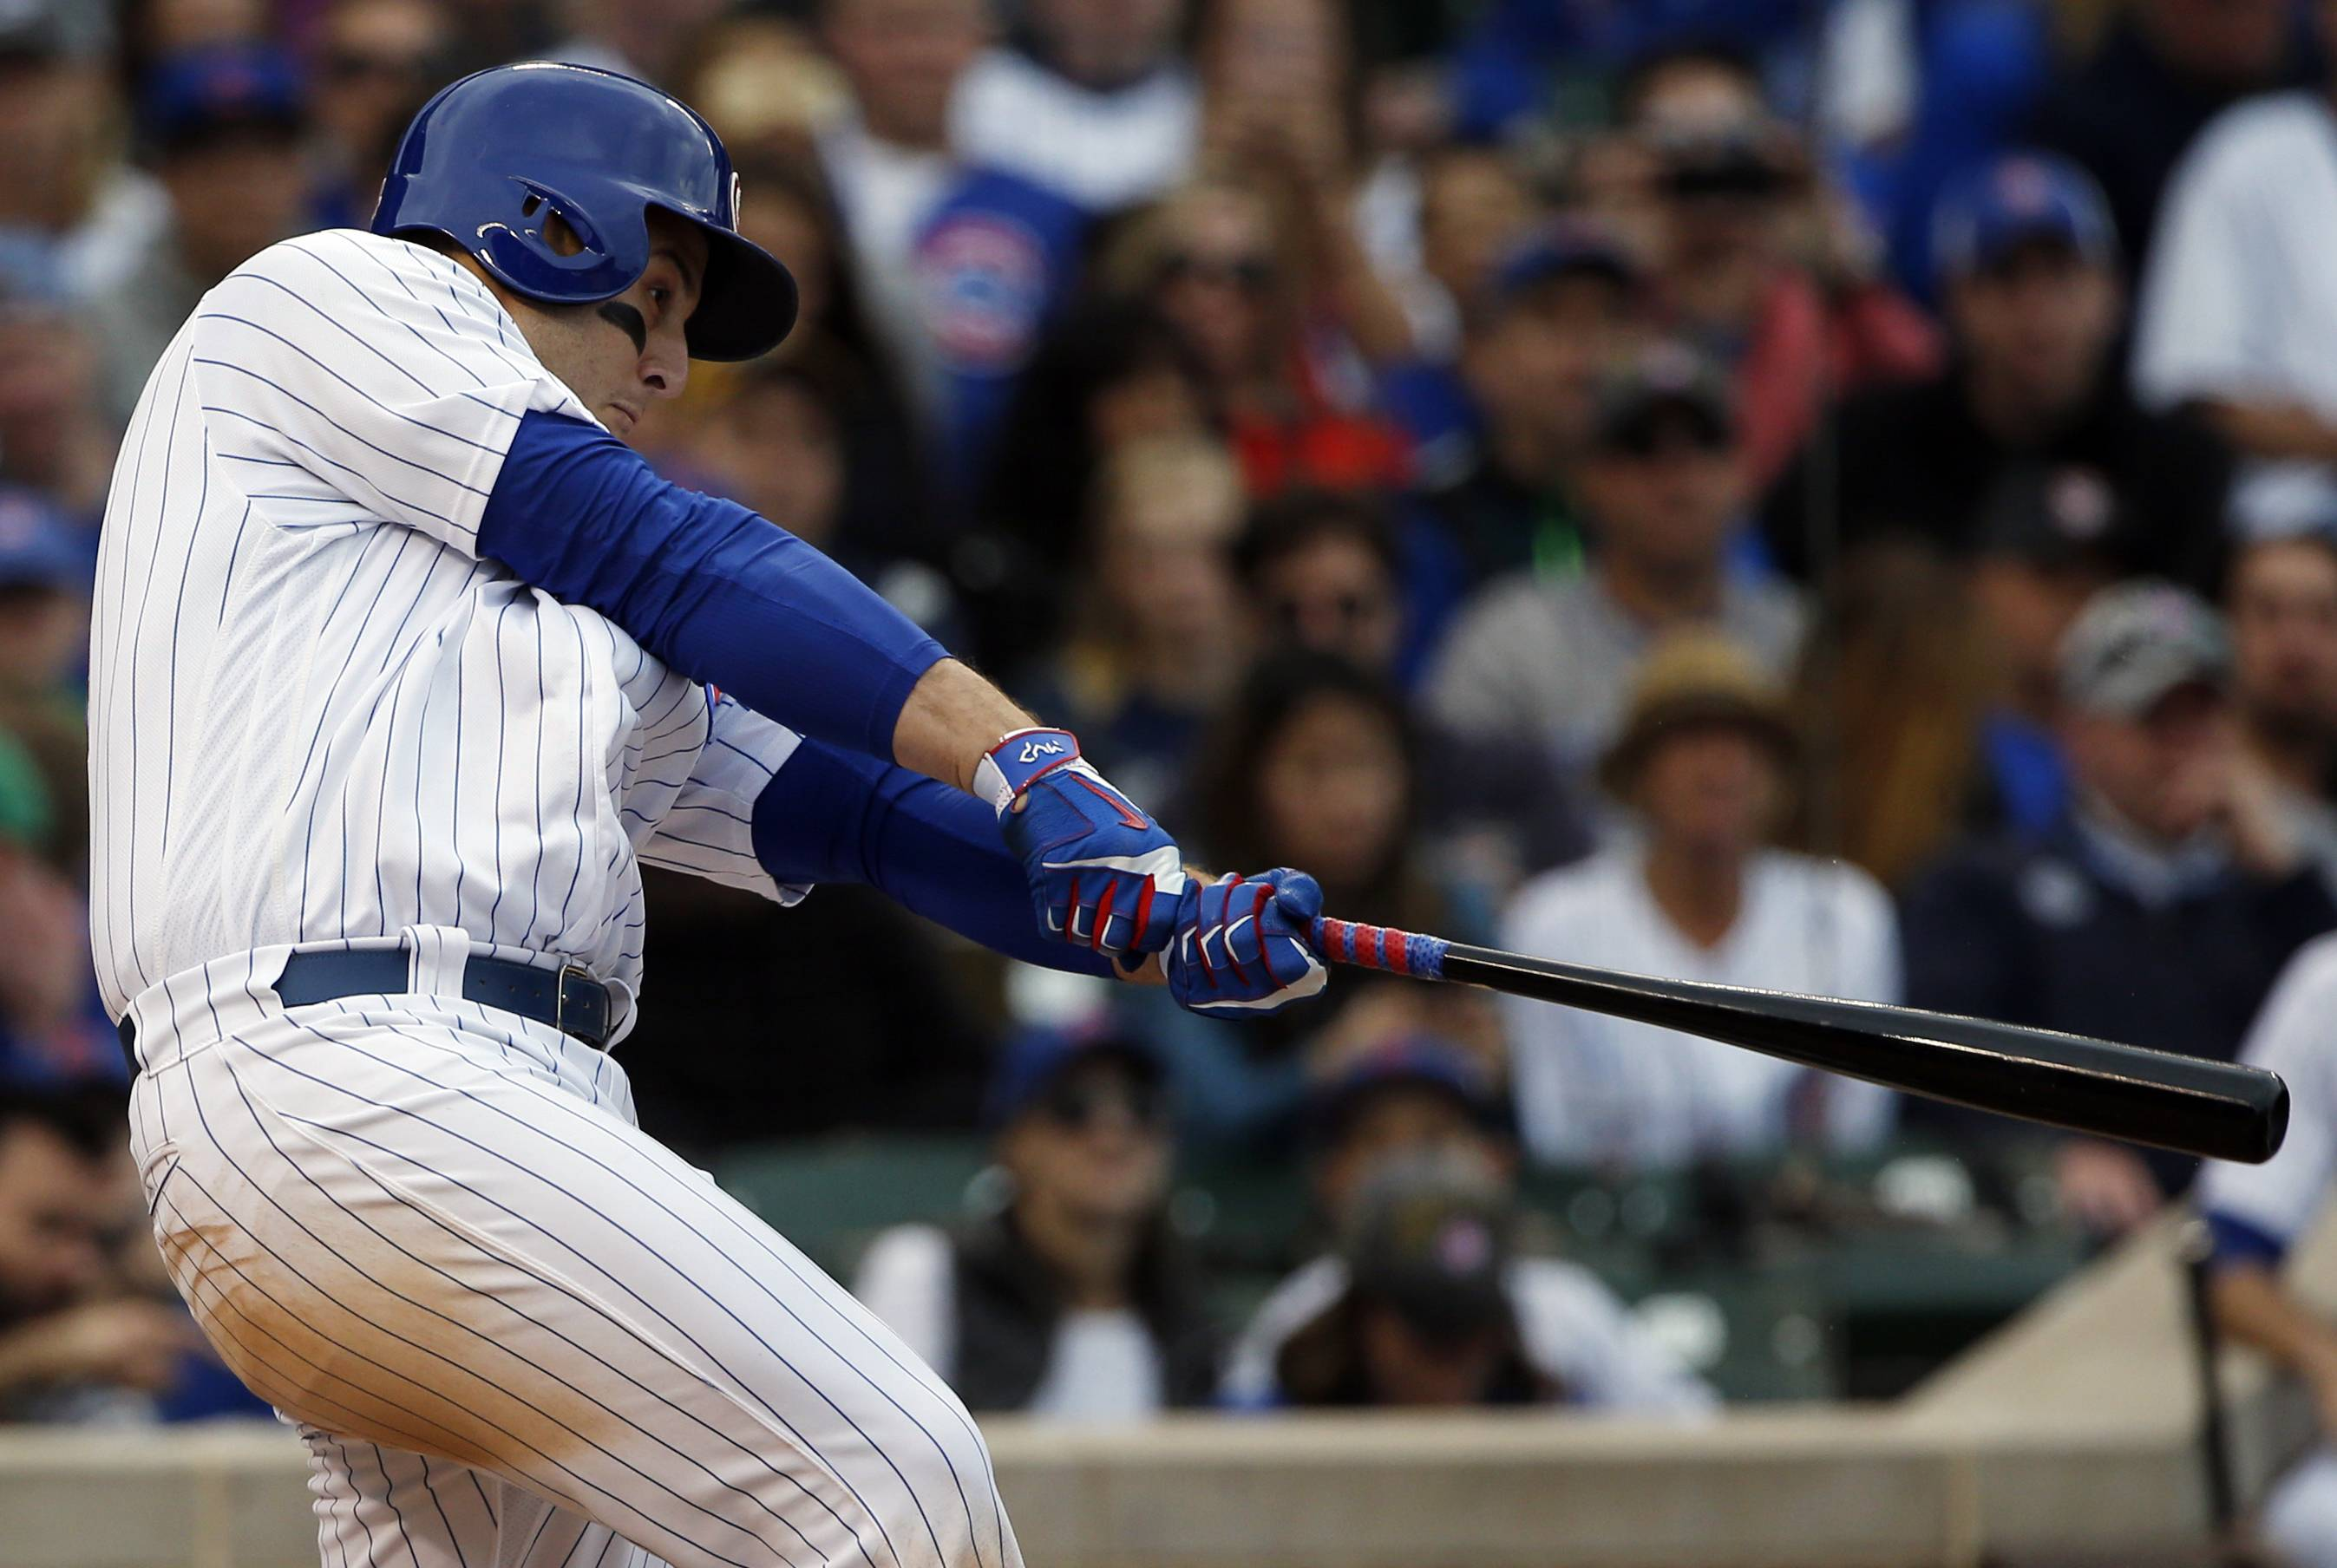 Chicago Cubs' left-handed hitter Anthony Rizzo has had some trouble hitting into the infield shift, according to manager Joe Maddon.